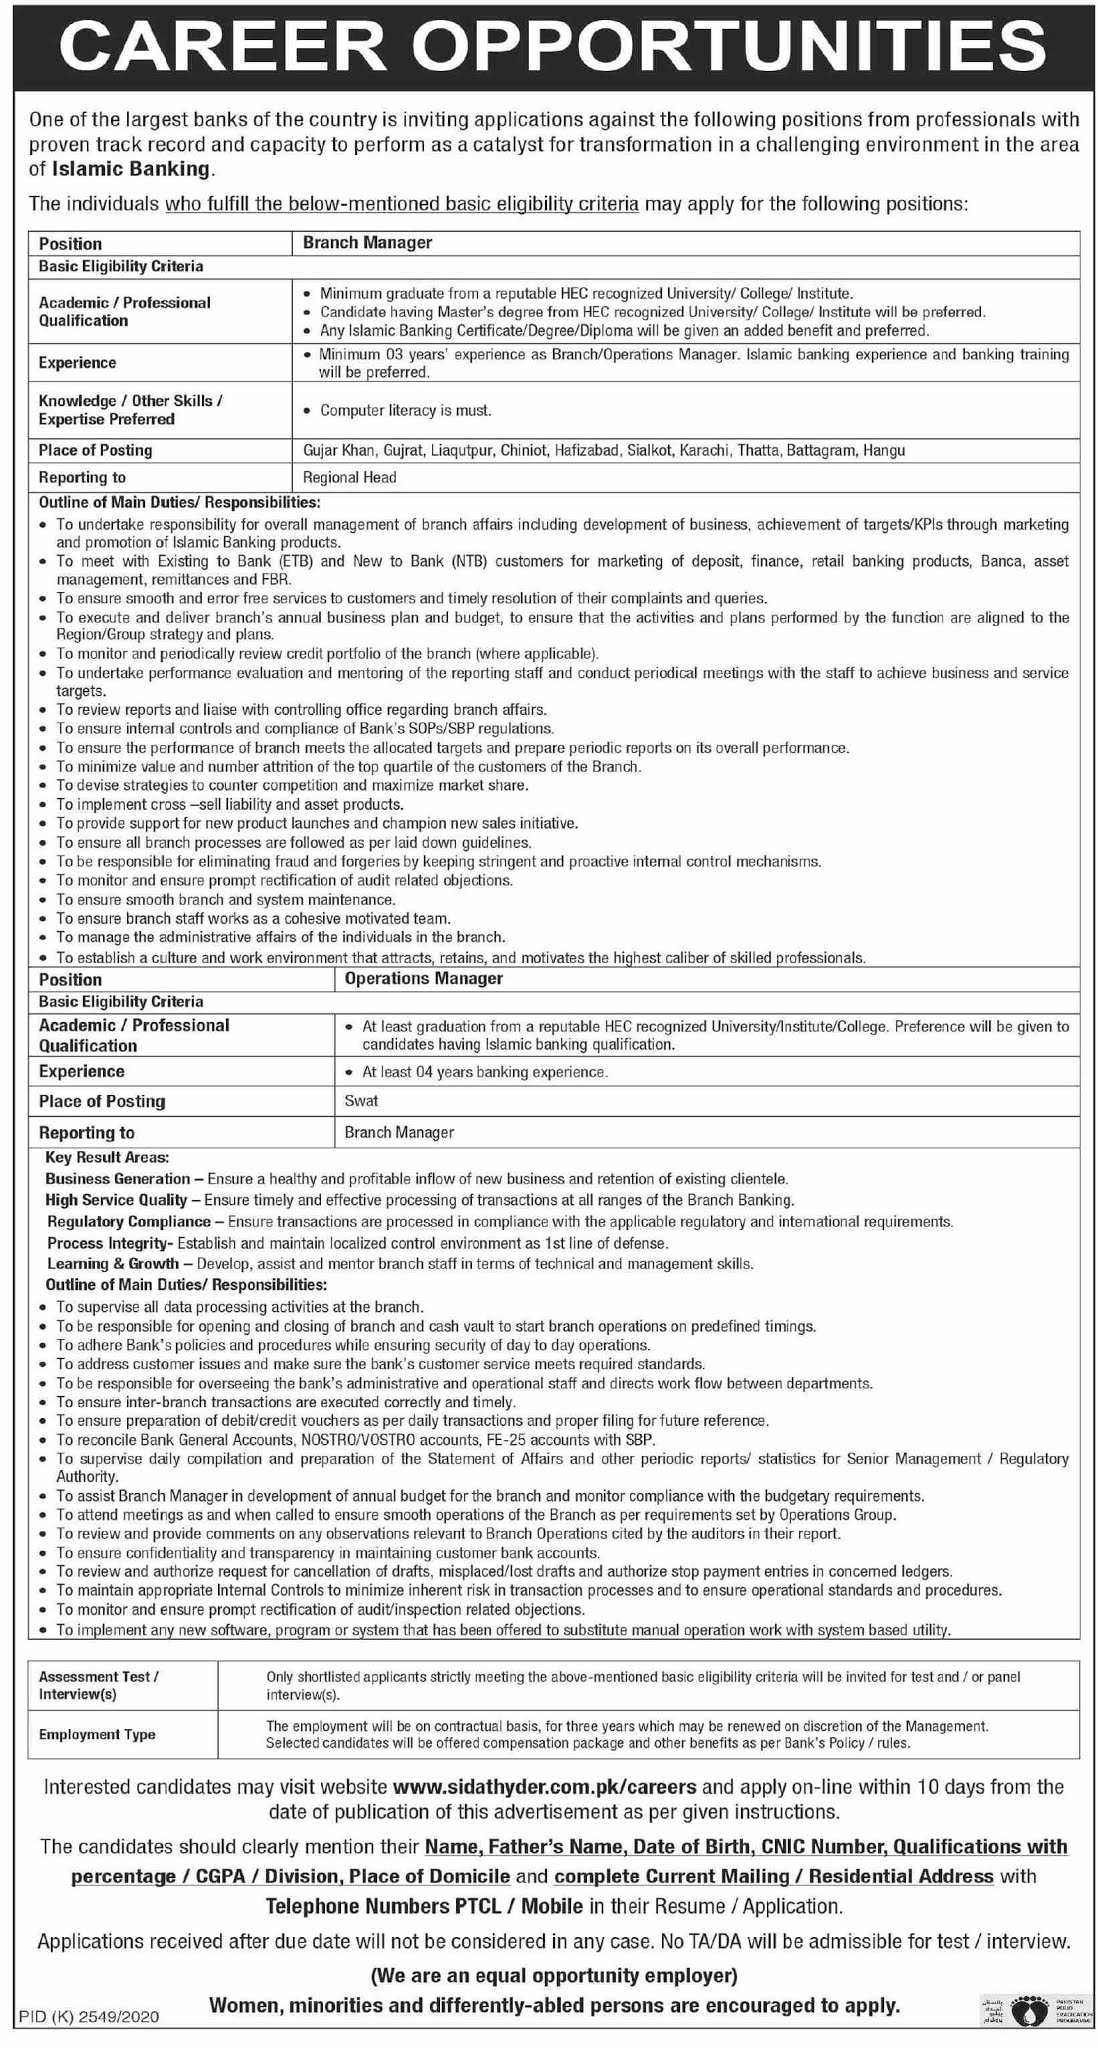 www.sidathyder.com.pk - Largest Bank of the Country Jobs 2021 in All Over Pakistan